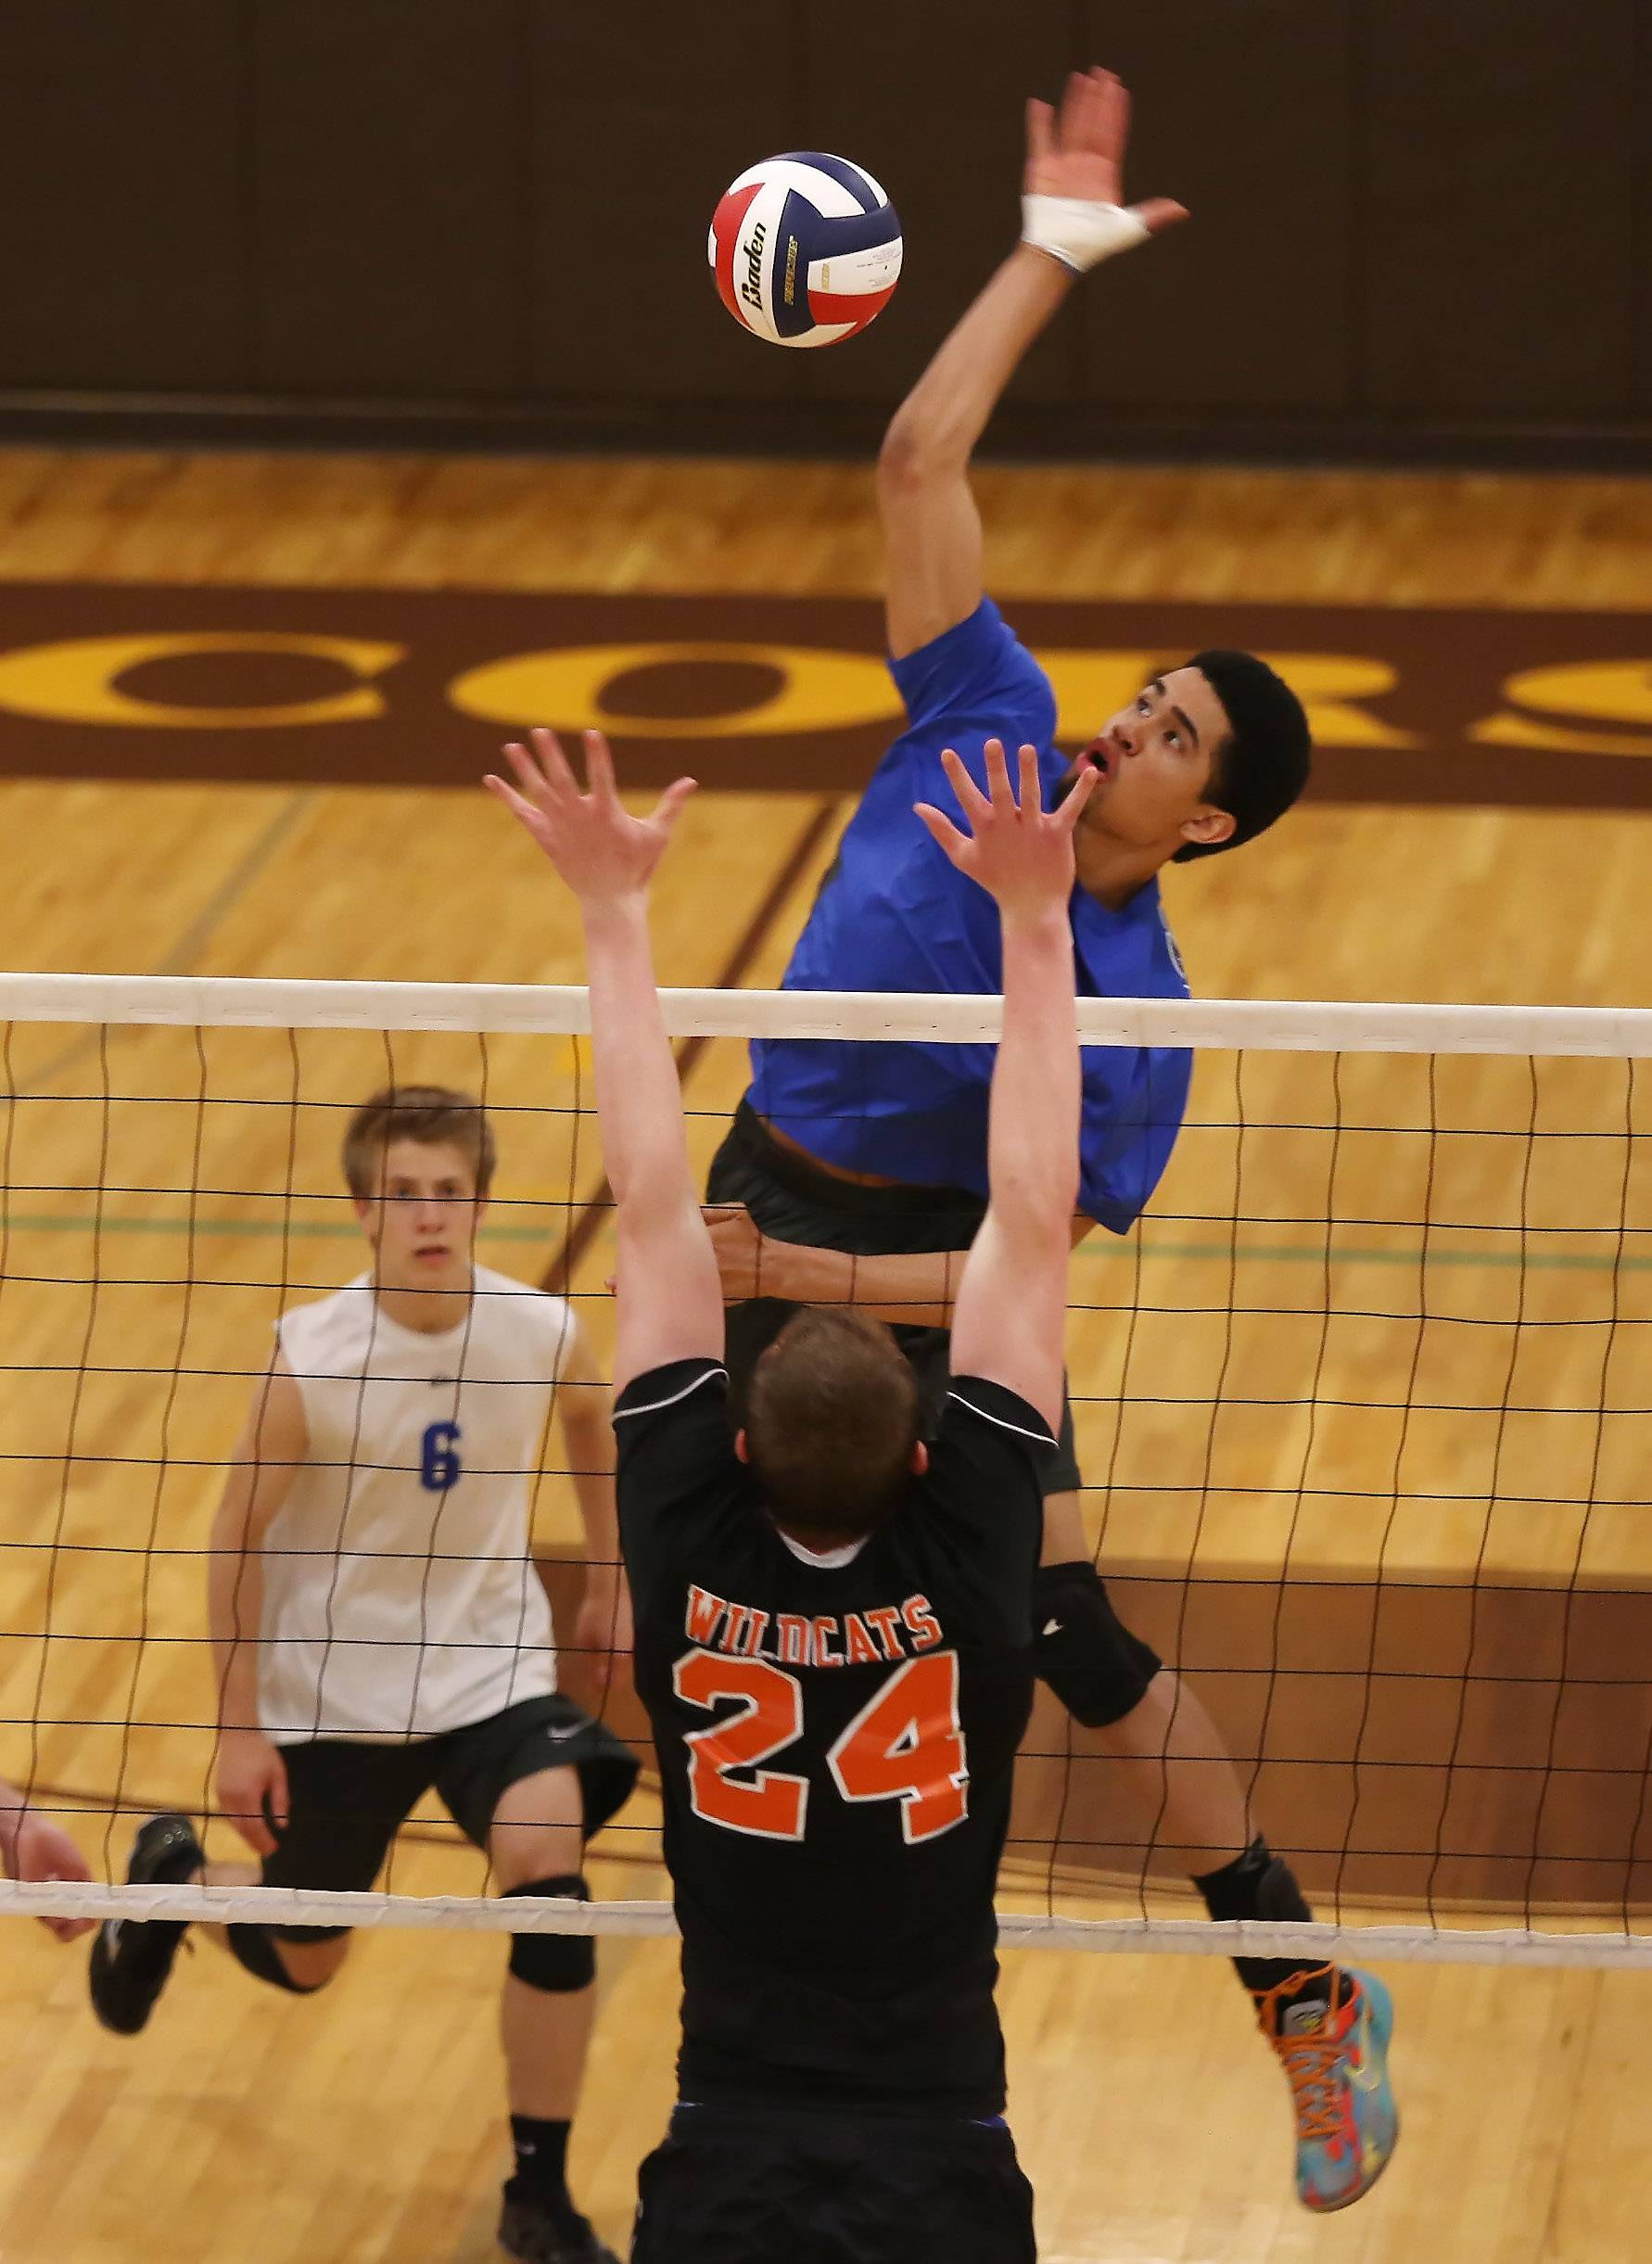 Vernon Hills' Lem Turner spikes the ball against Libertyville player Peter Feely during regional play Tuesday at Carmel.